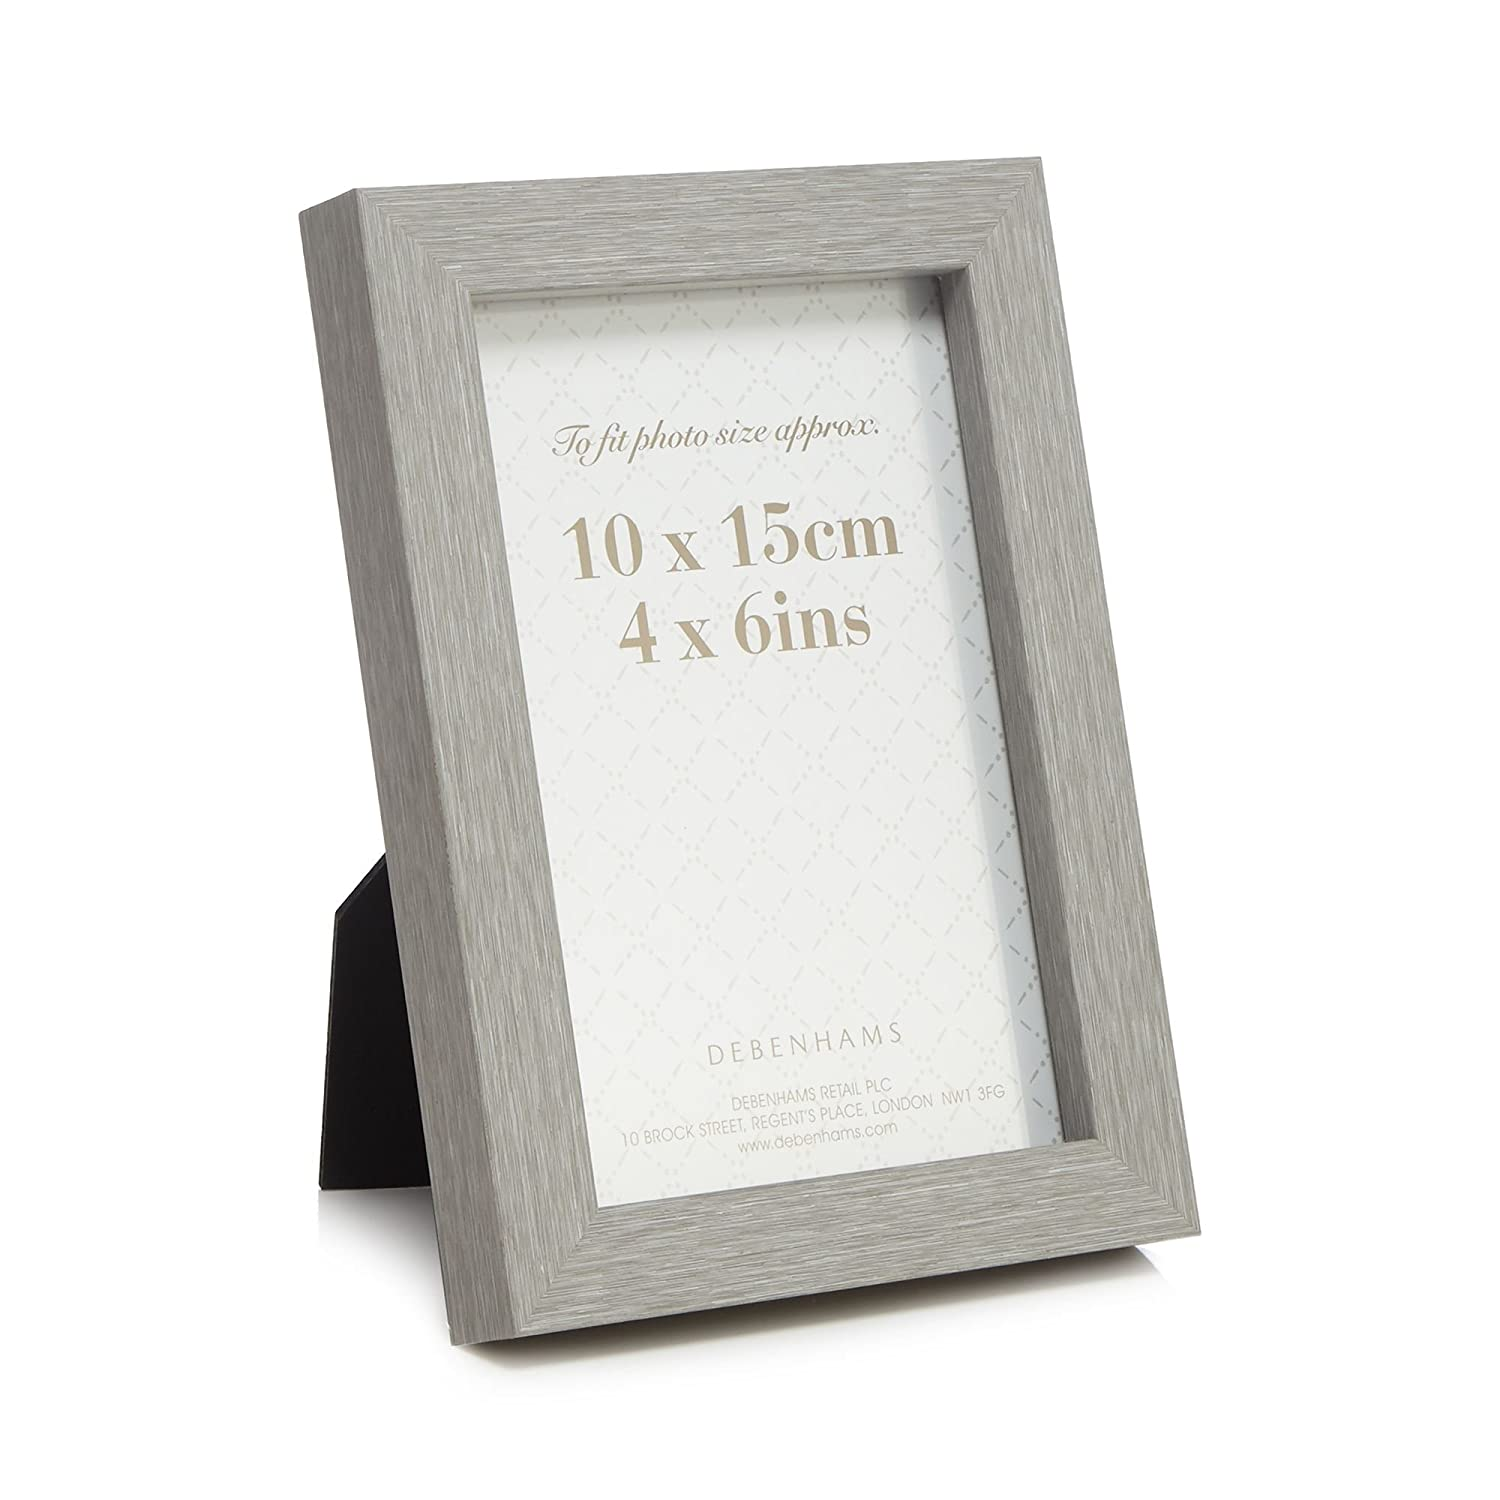 61003e563a Debenhams Home Collection Grey Wood Effect Photo Frame: Home Collection:  Amazon.co.uk: Kitchen & Home